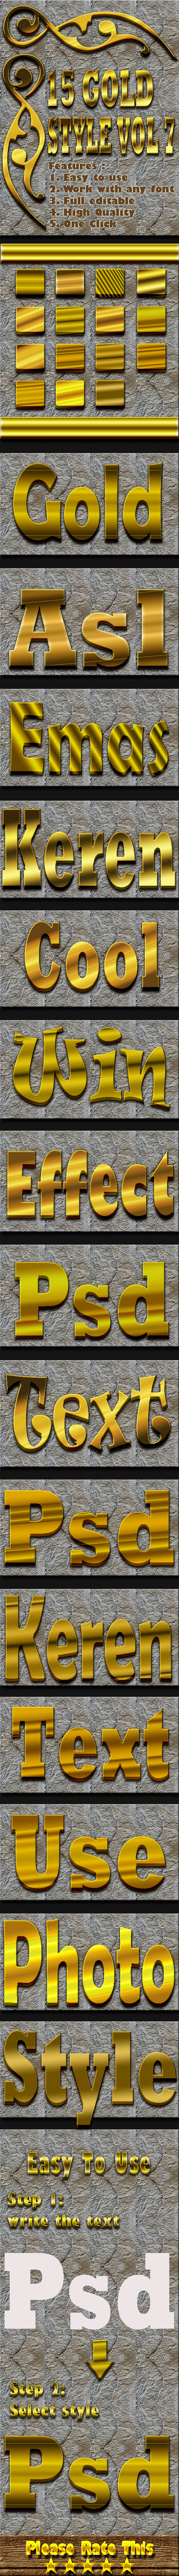 15 Gold Text Effect Style Vol 7 - Text Effects Styles